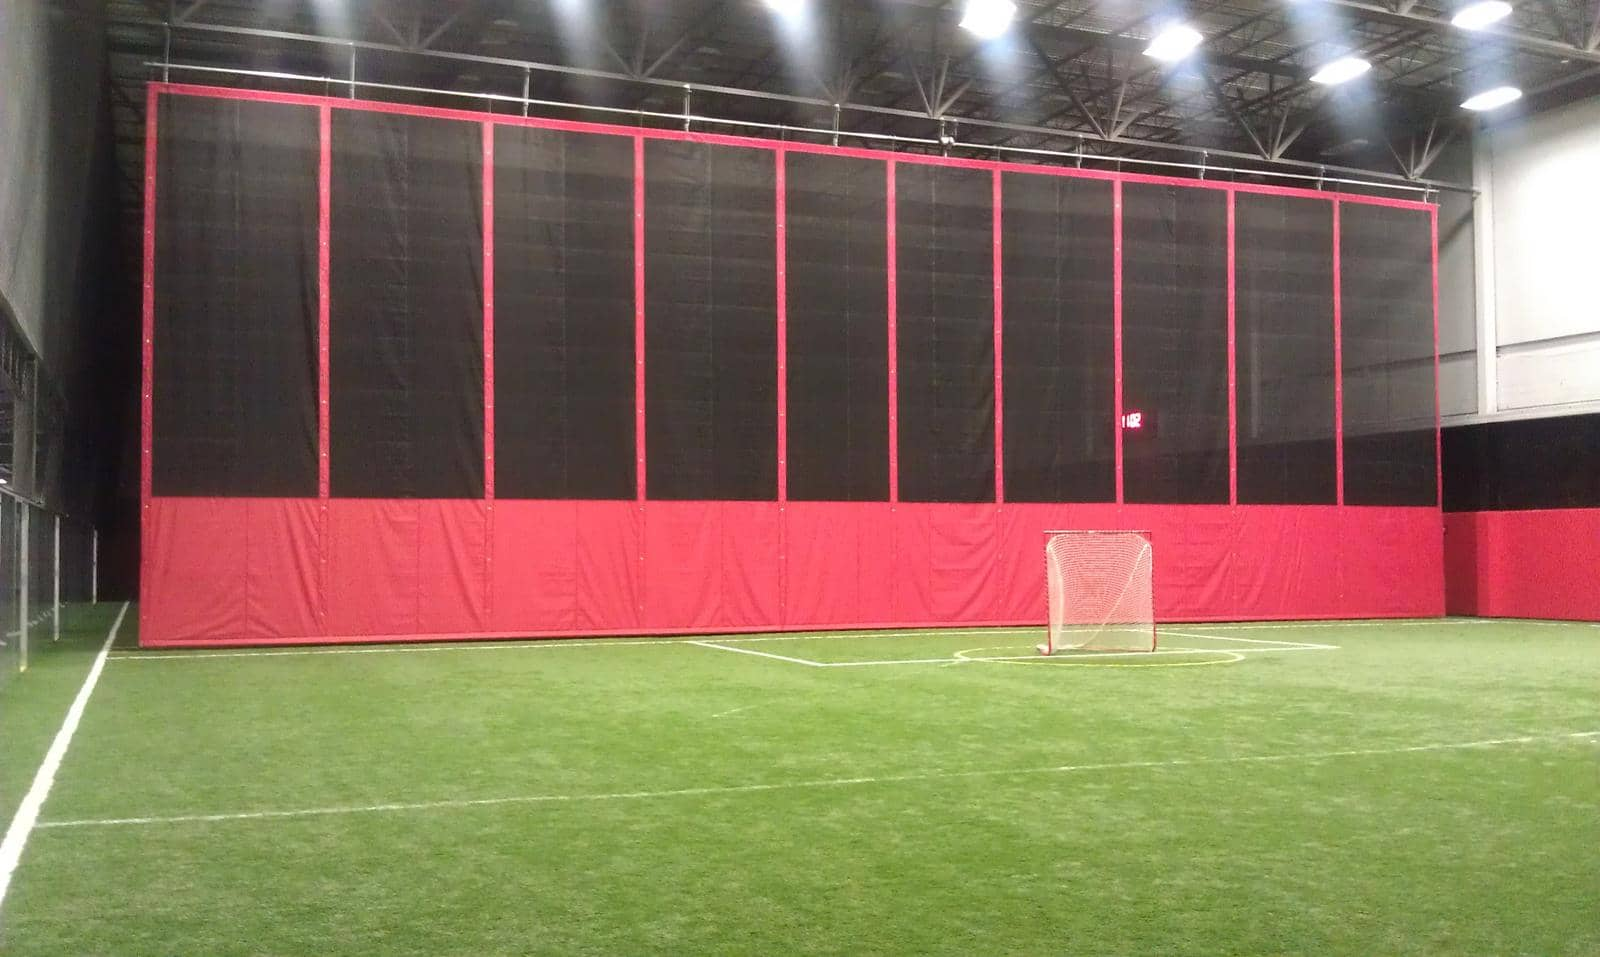 Artificial Surfaces for indoor Sport with Divider Curtains